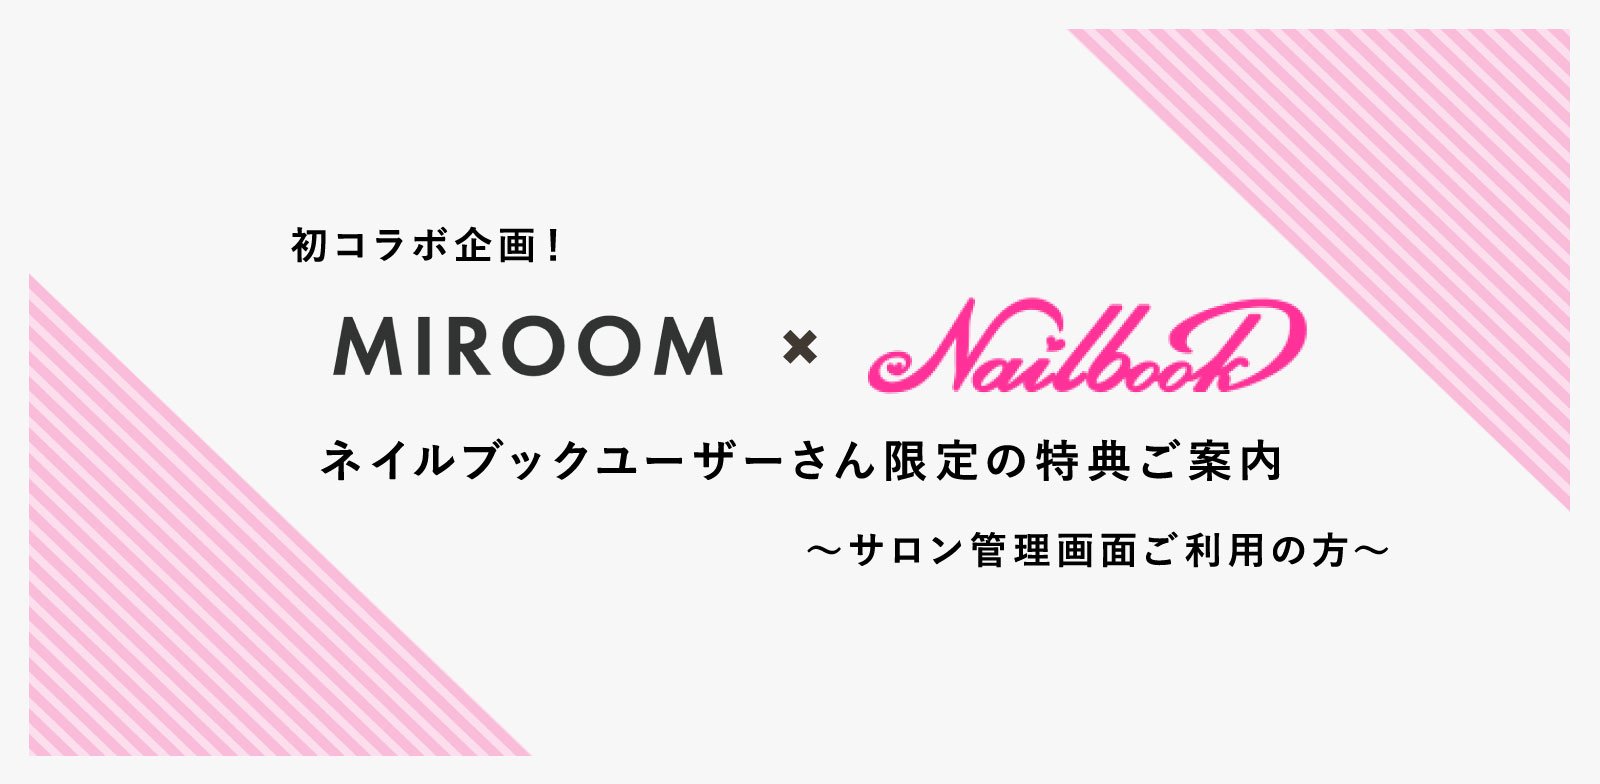 Nailbook extra campaign lp banner pc